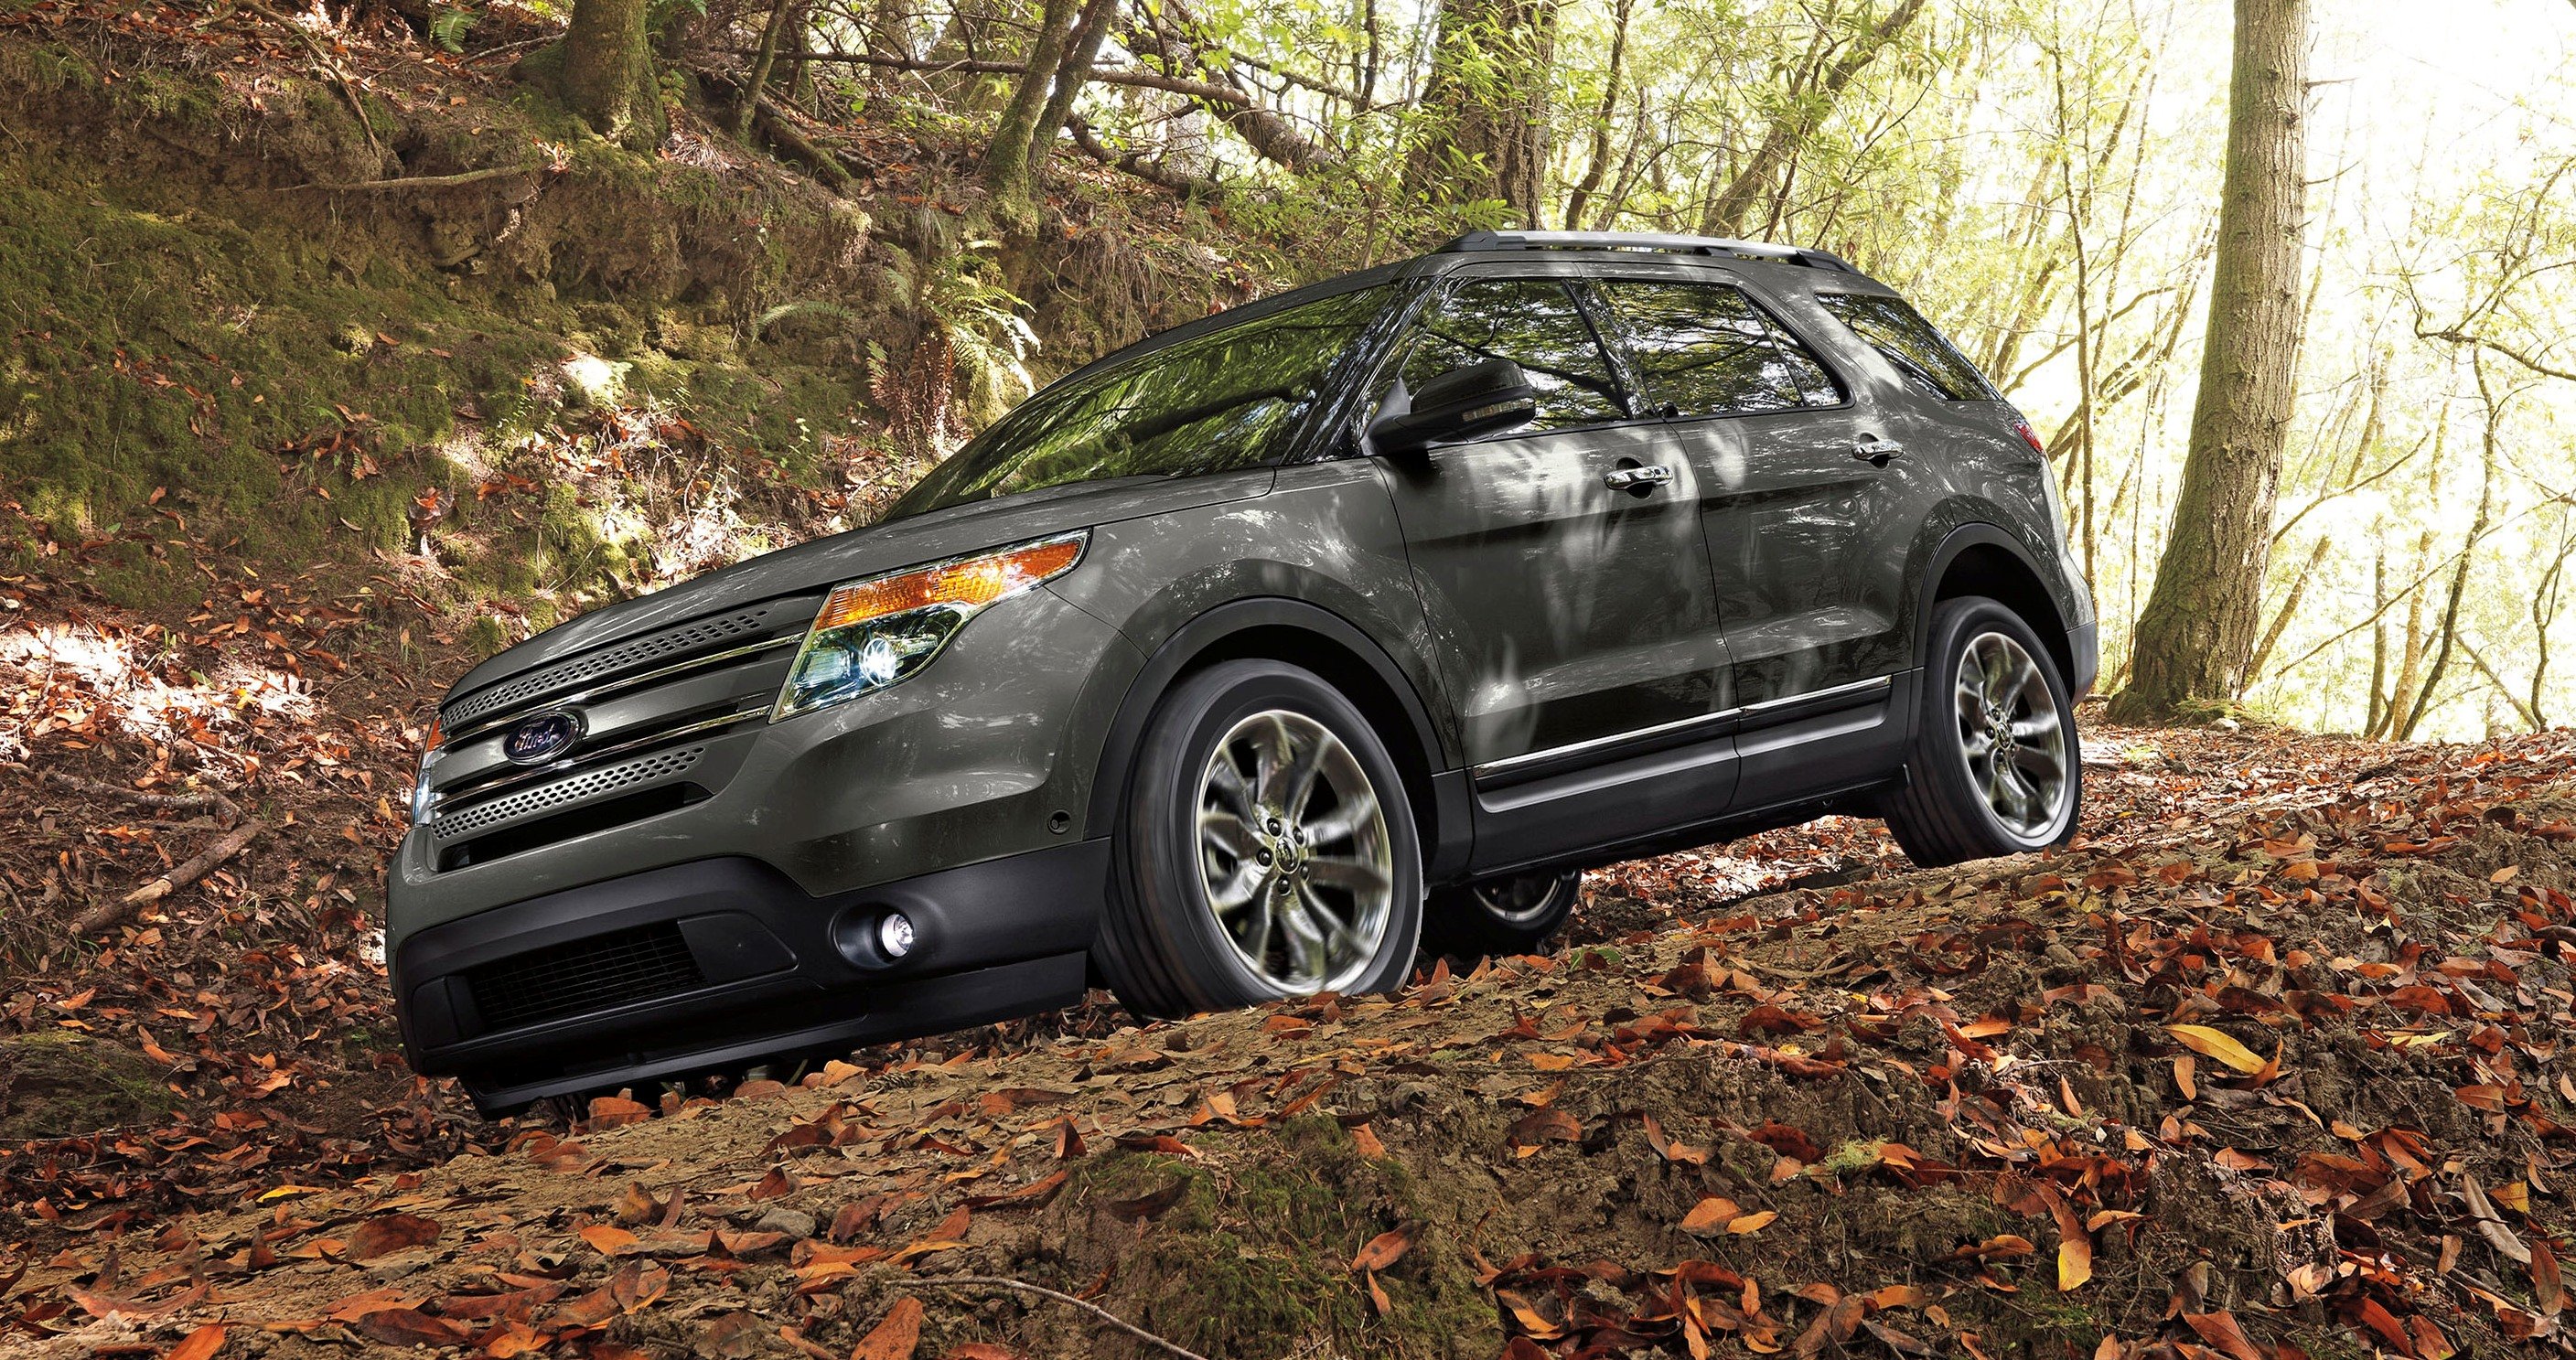 2015 ford explorer xlt appearance pack - Ford Explorer Black 2015